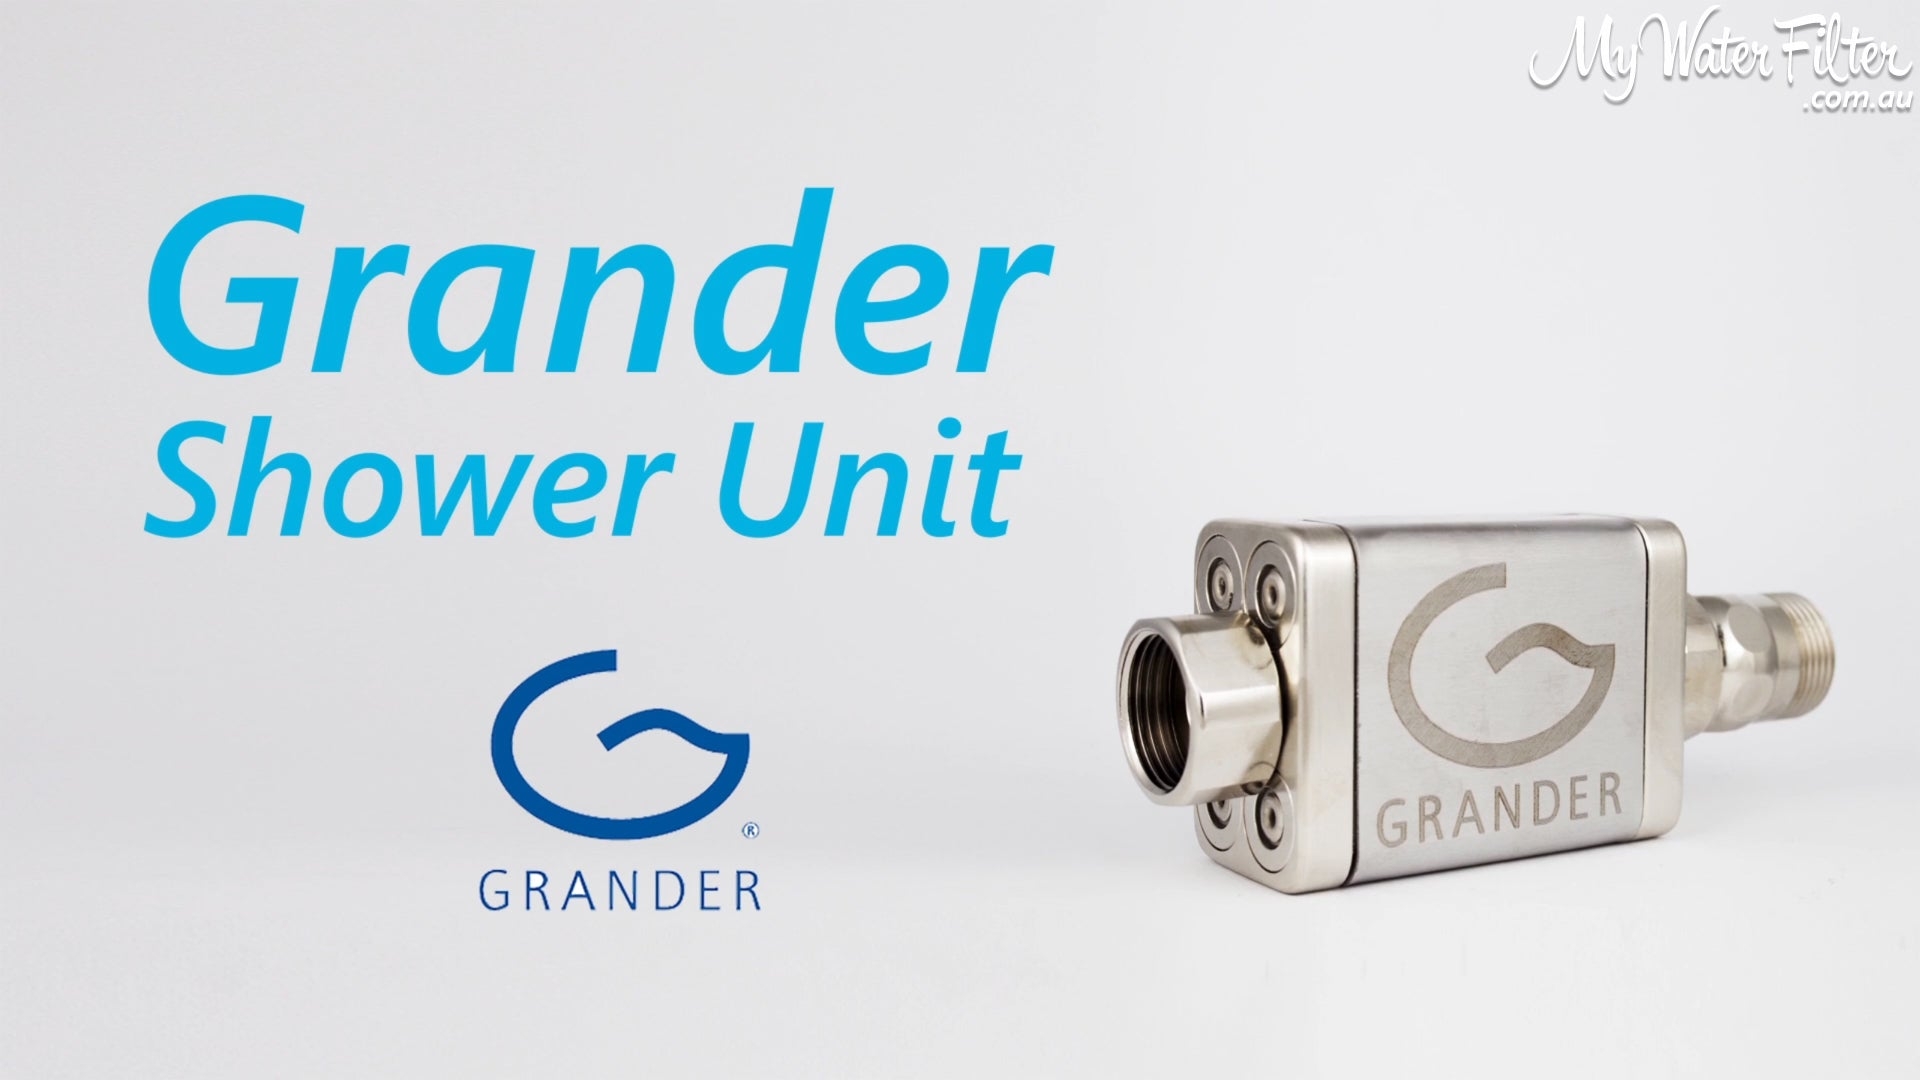 Grander Flexible Unit with Text